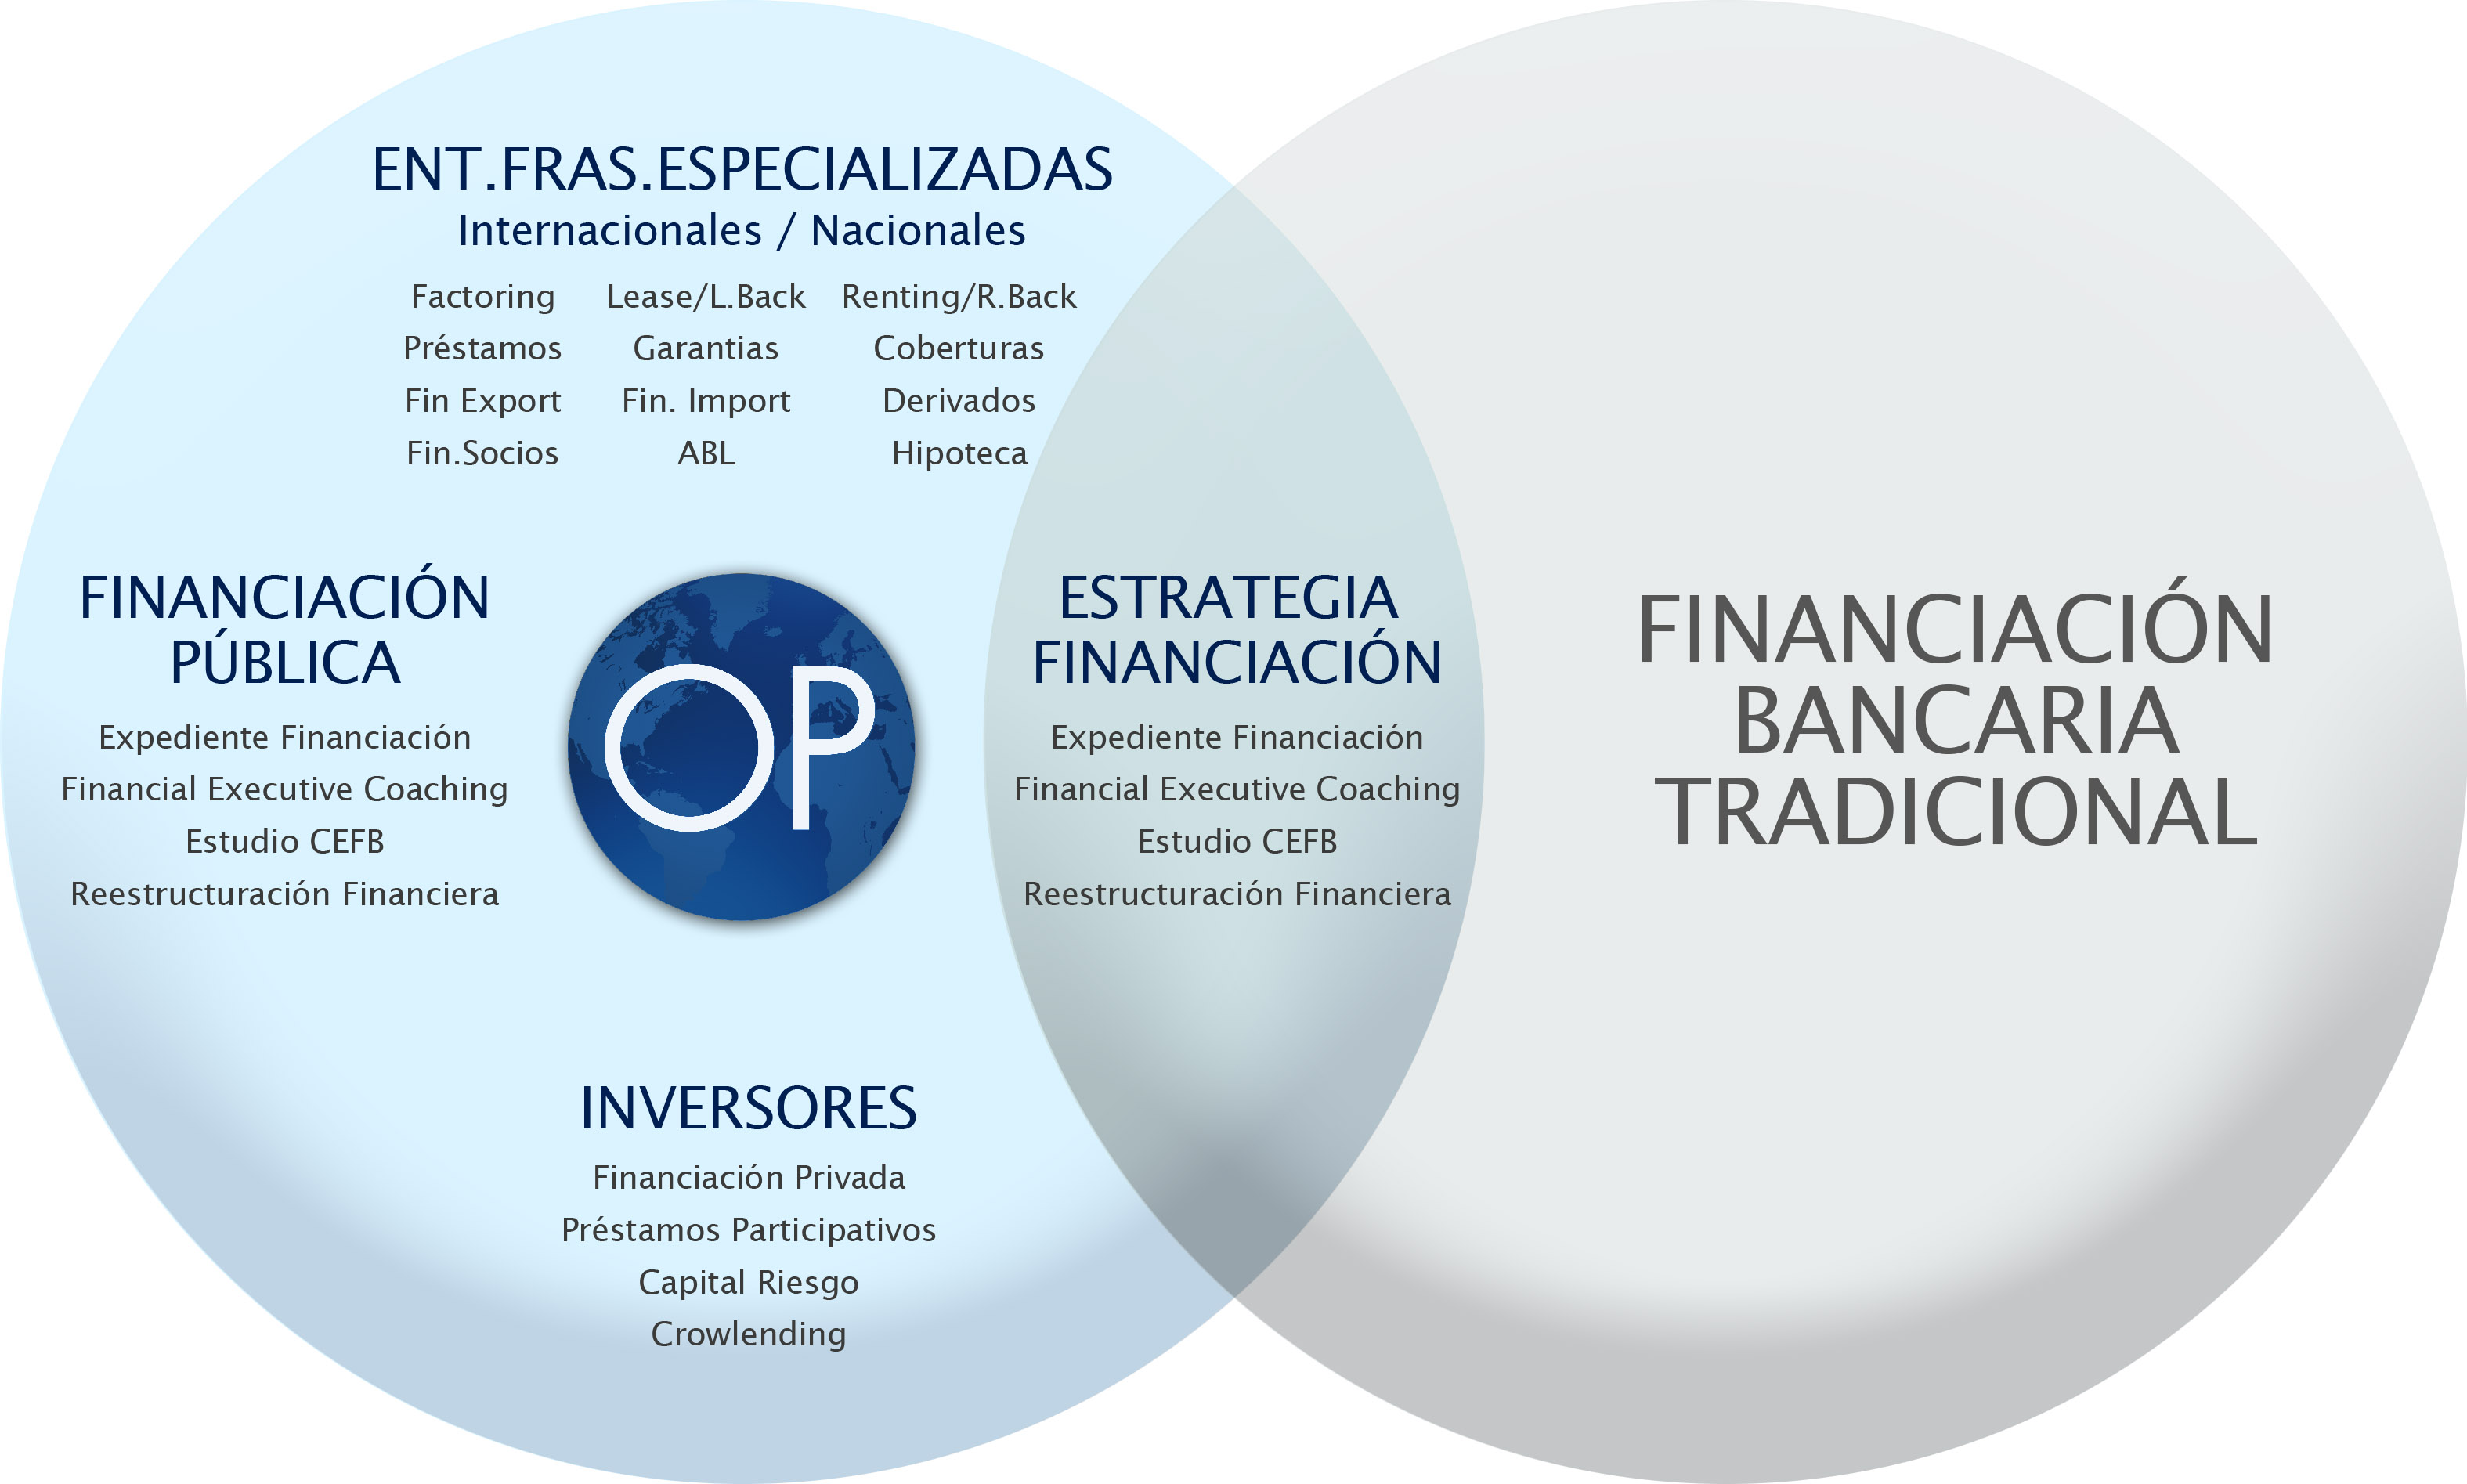 GRAFICO_FINANCIACION